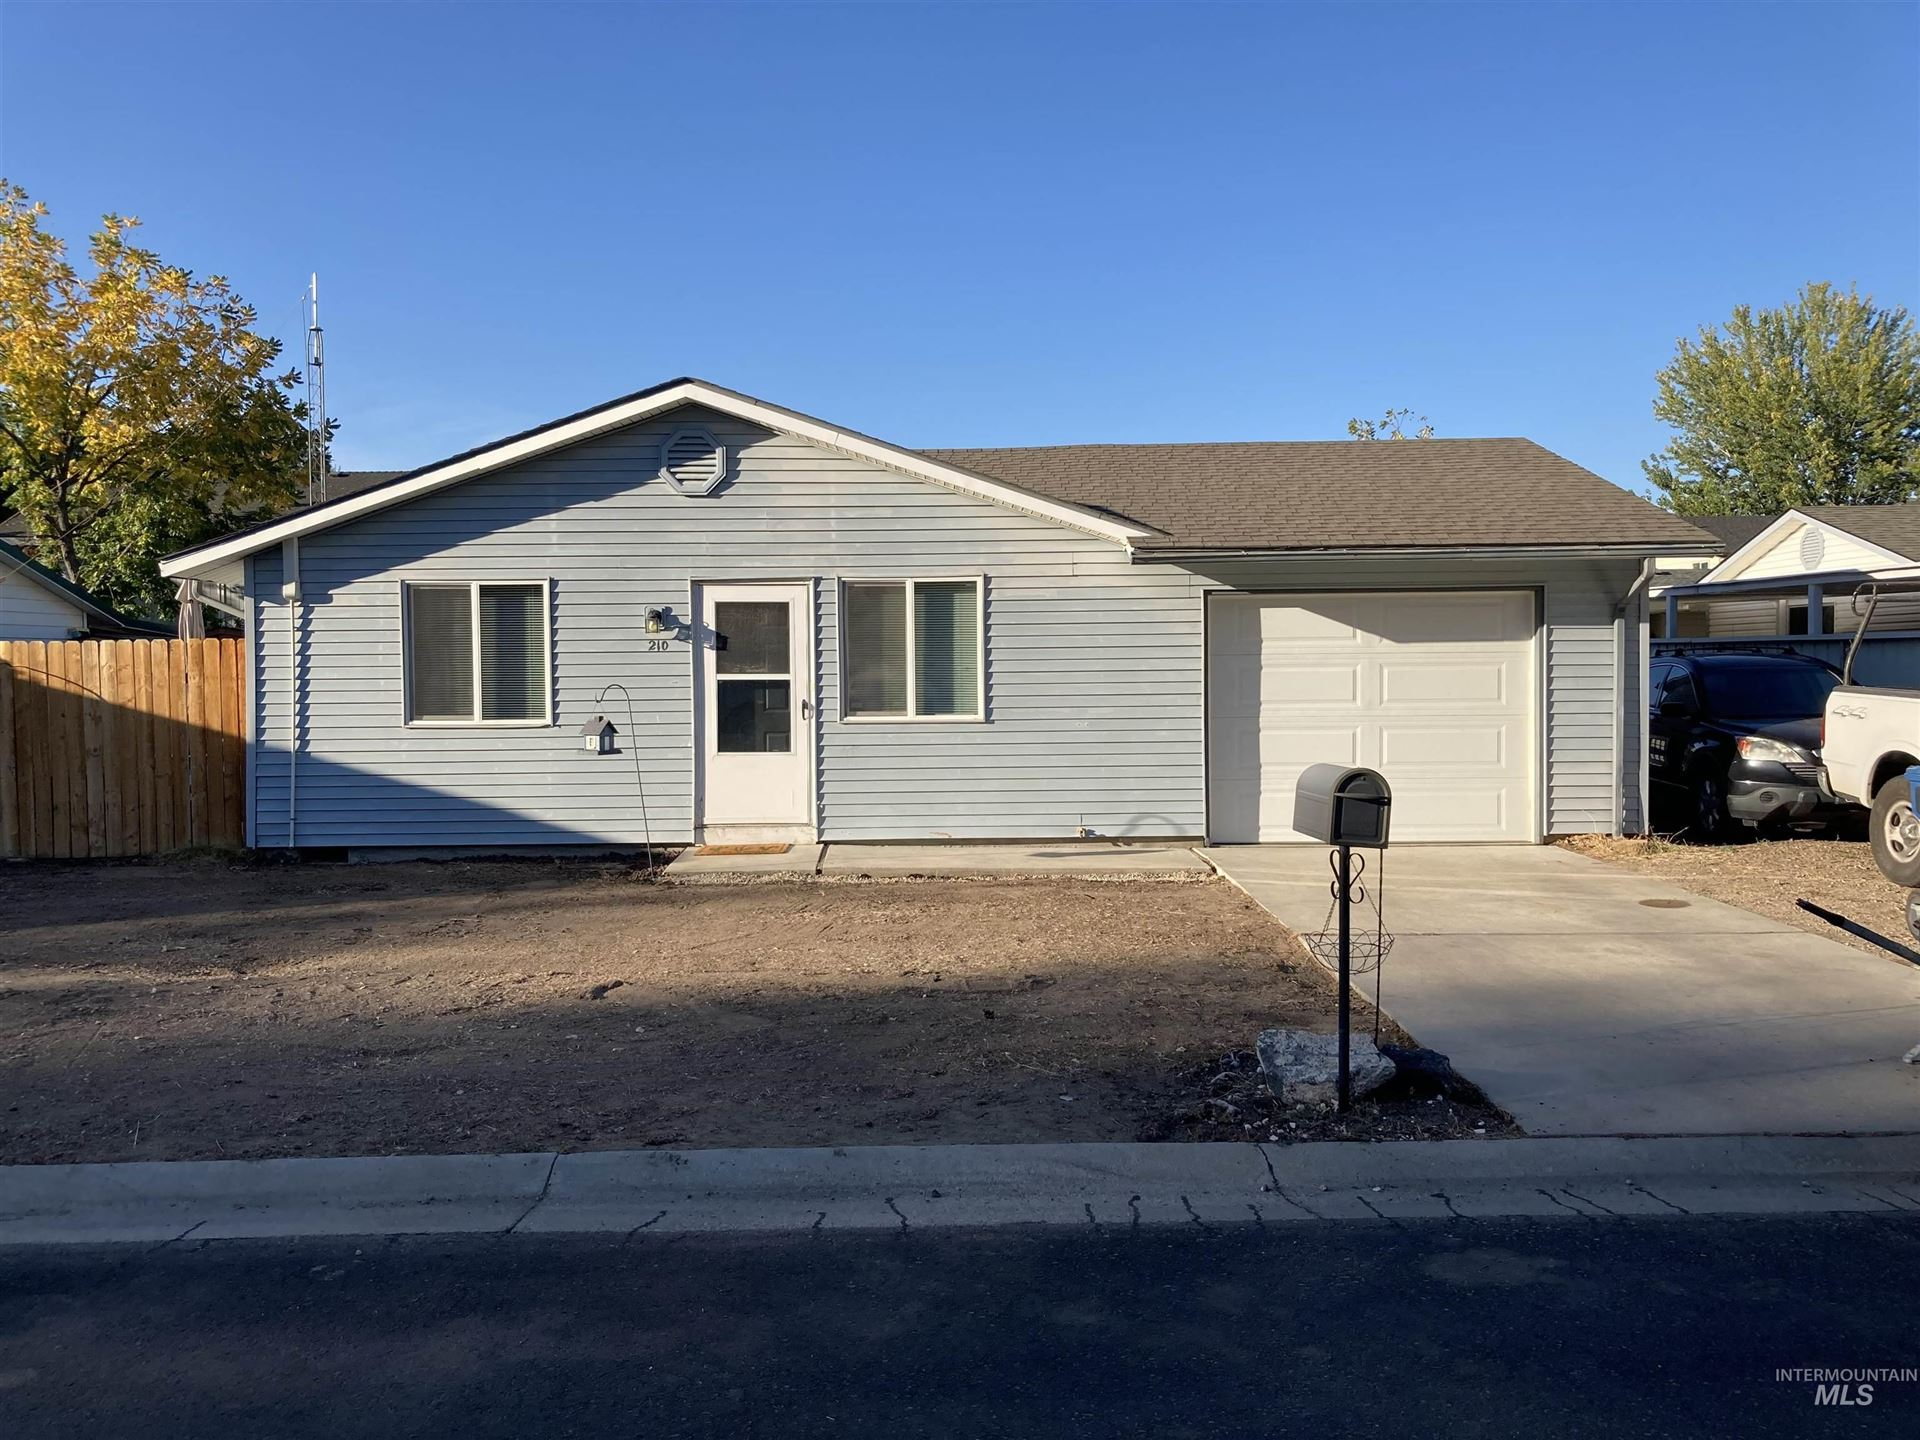 210 Nelson Ct, Middleton, ID 83644 - MLS#: 98820530